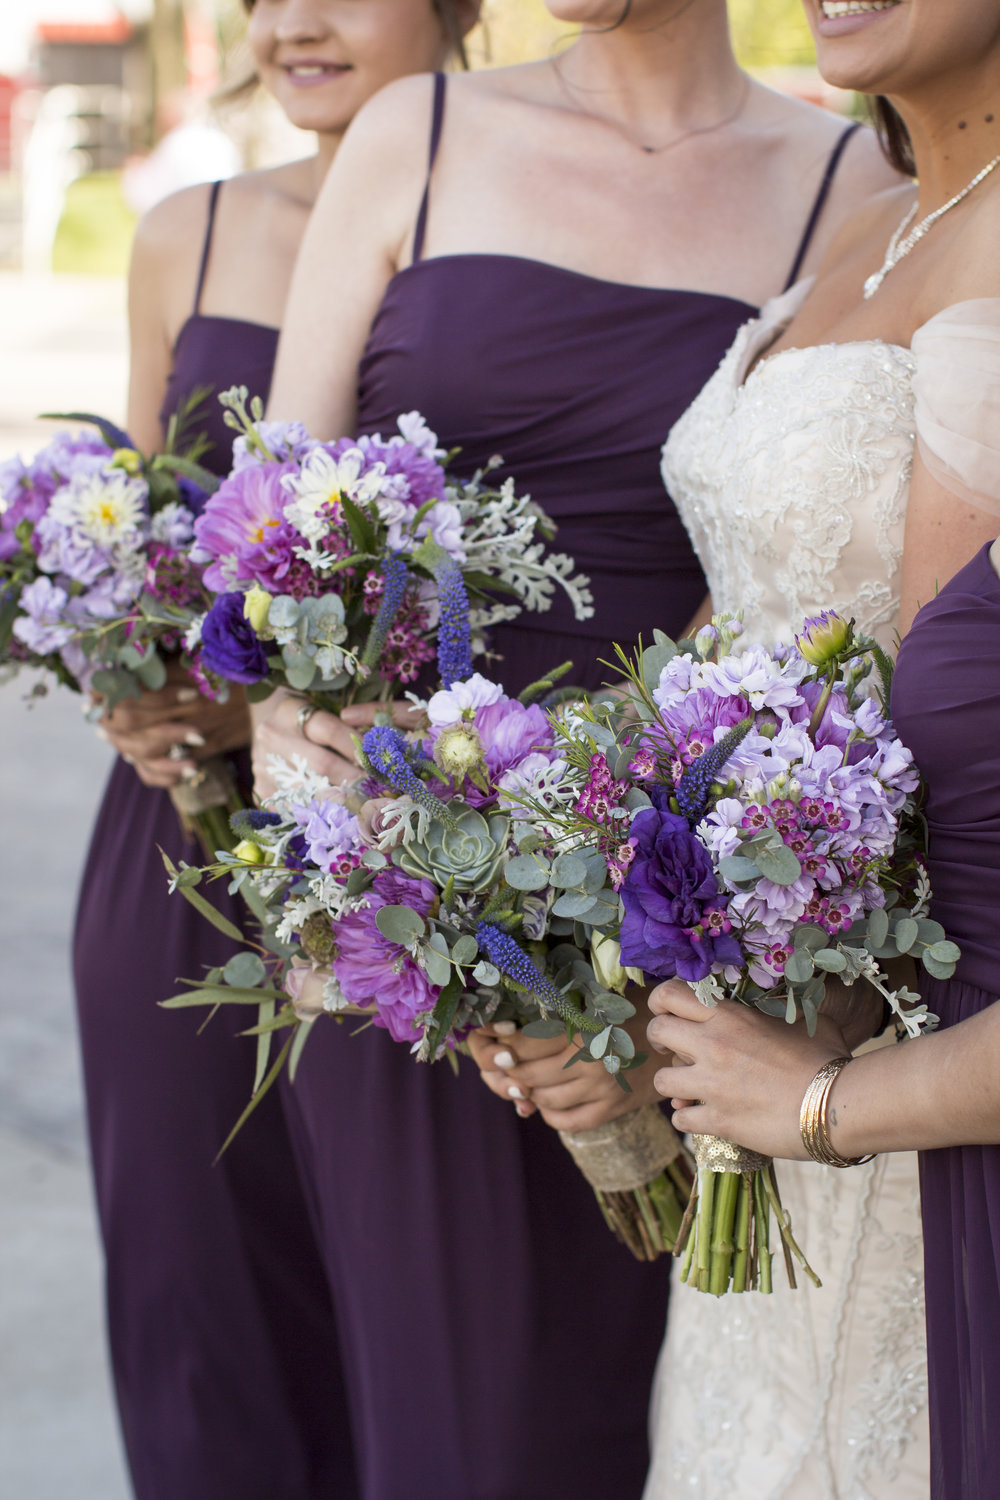 Curvy Bride | KC Wedding | Small Wedding Party